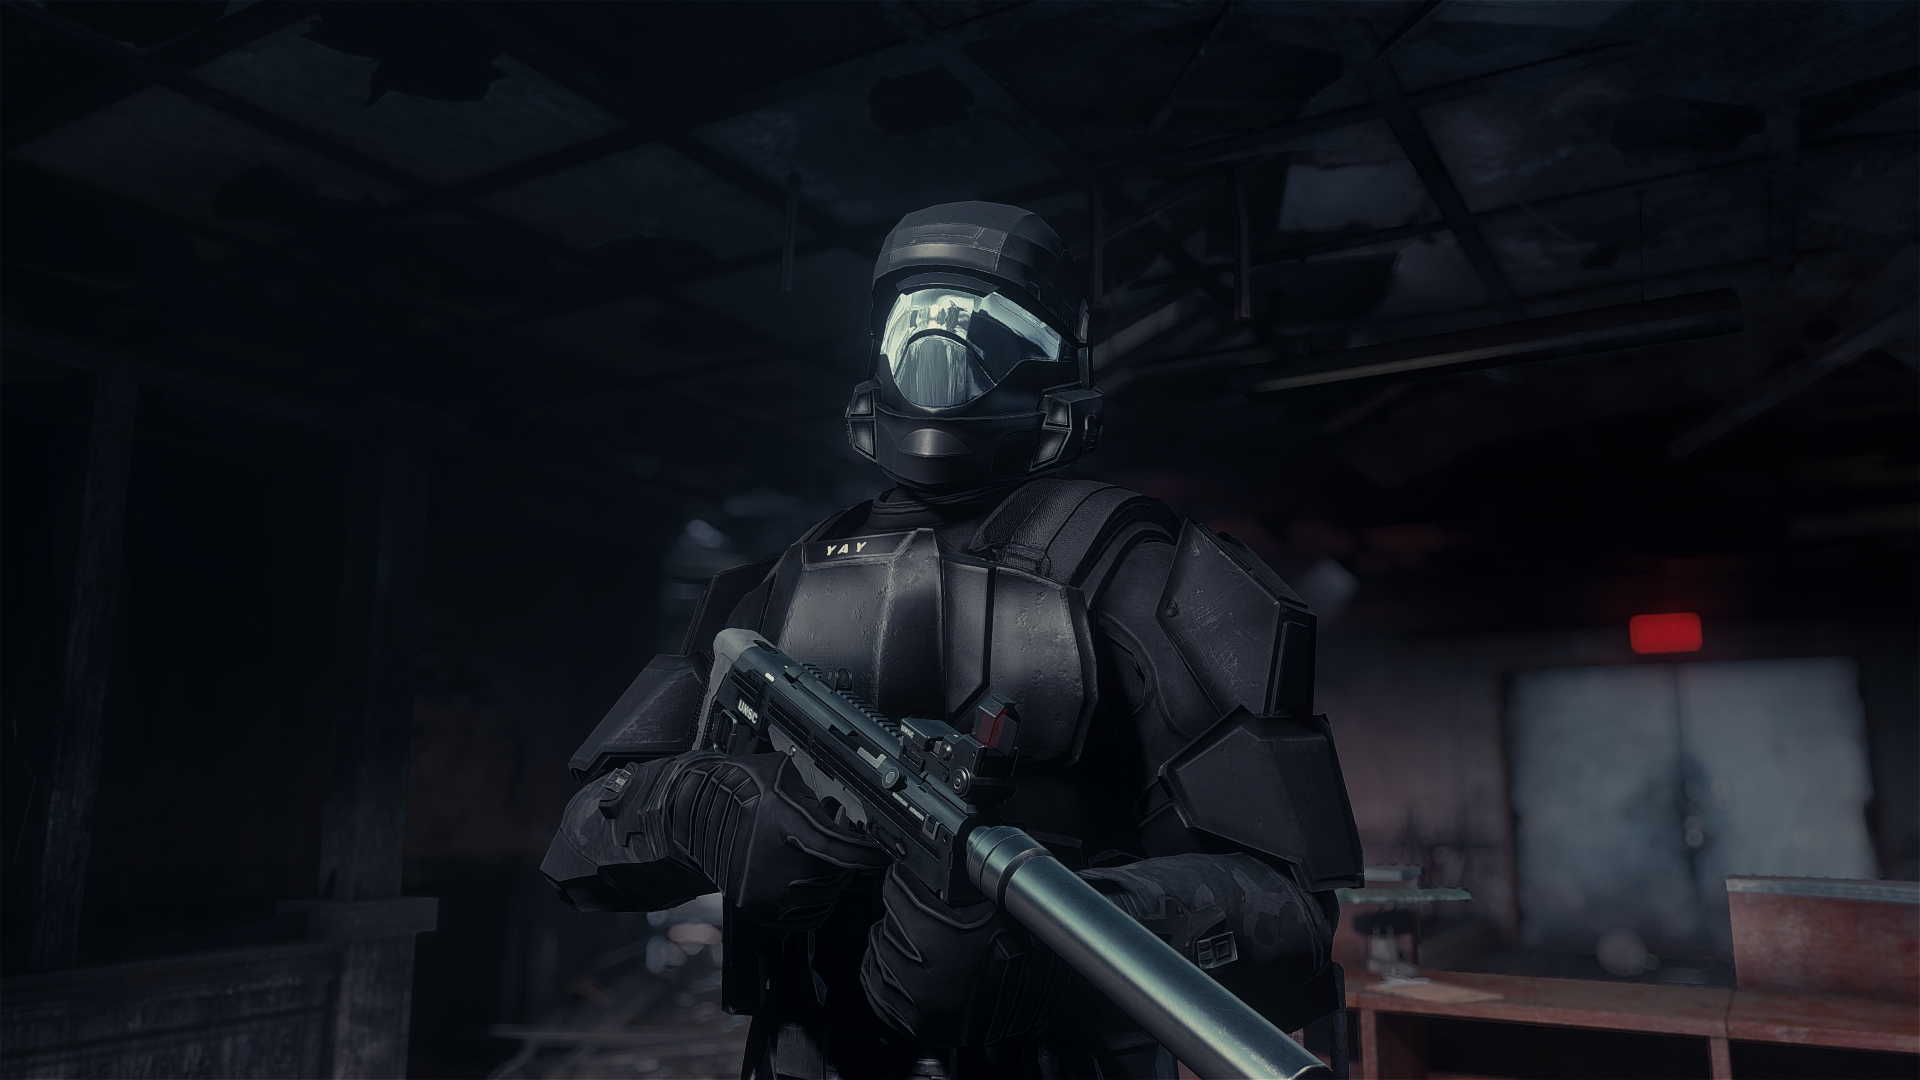 ODST WIP 4 at Fallout 4 Nexus - Mods and community